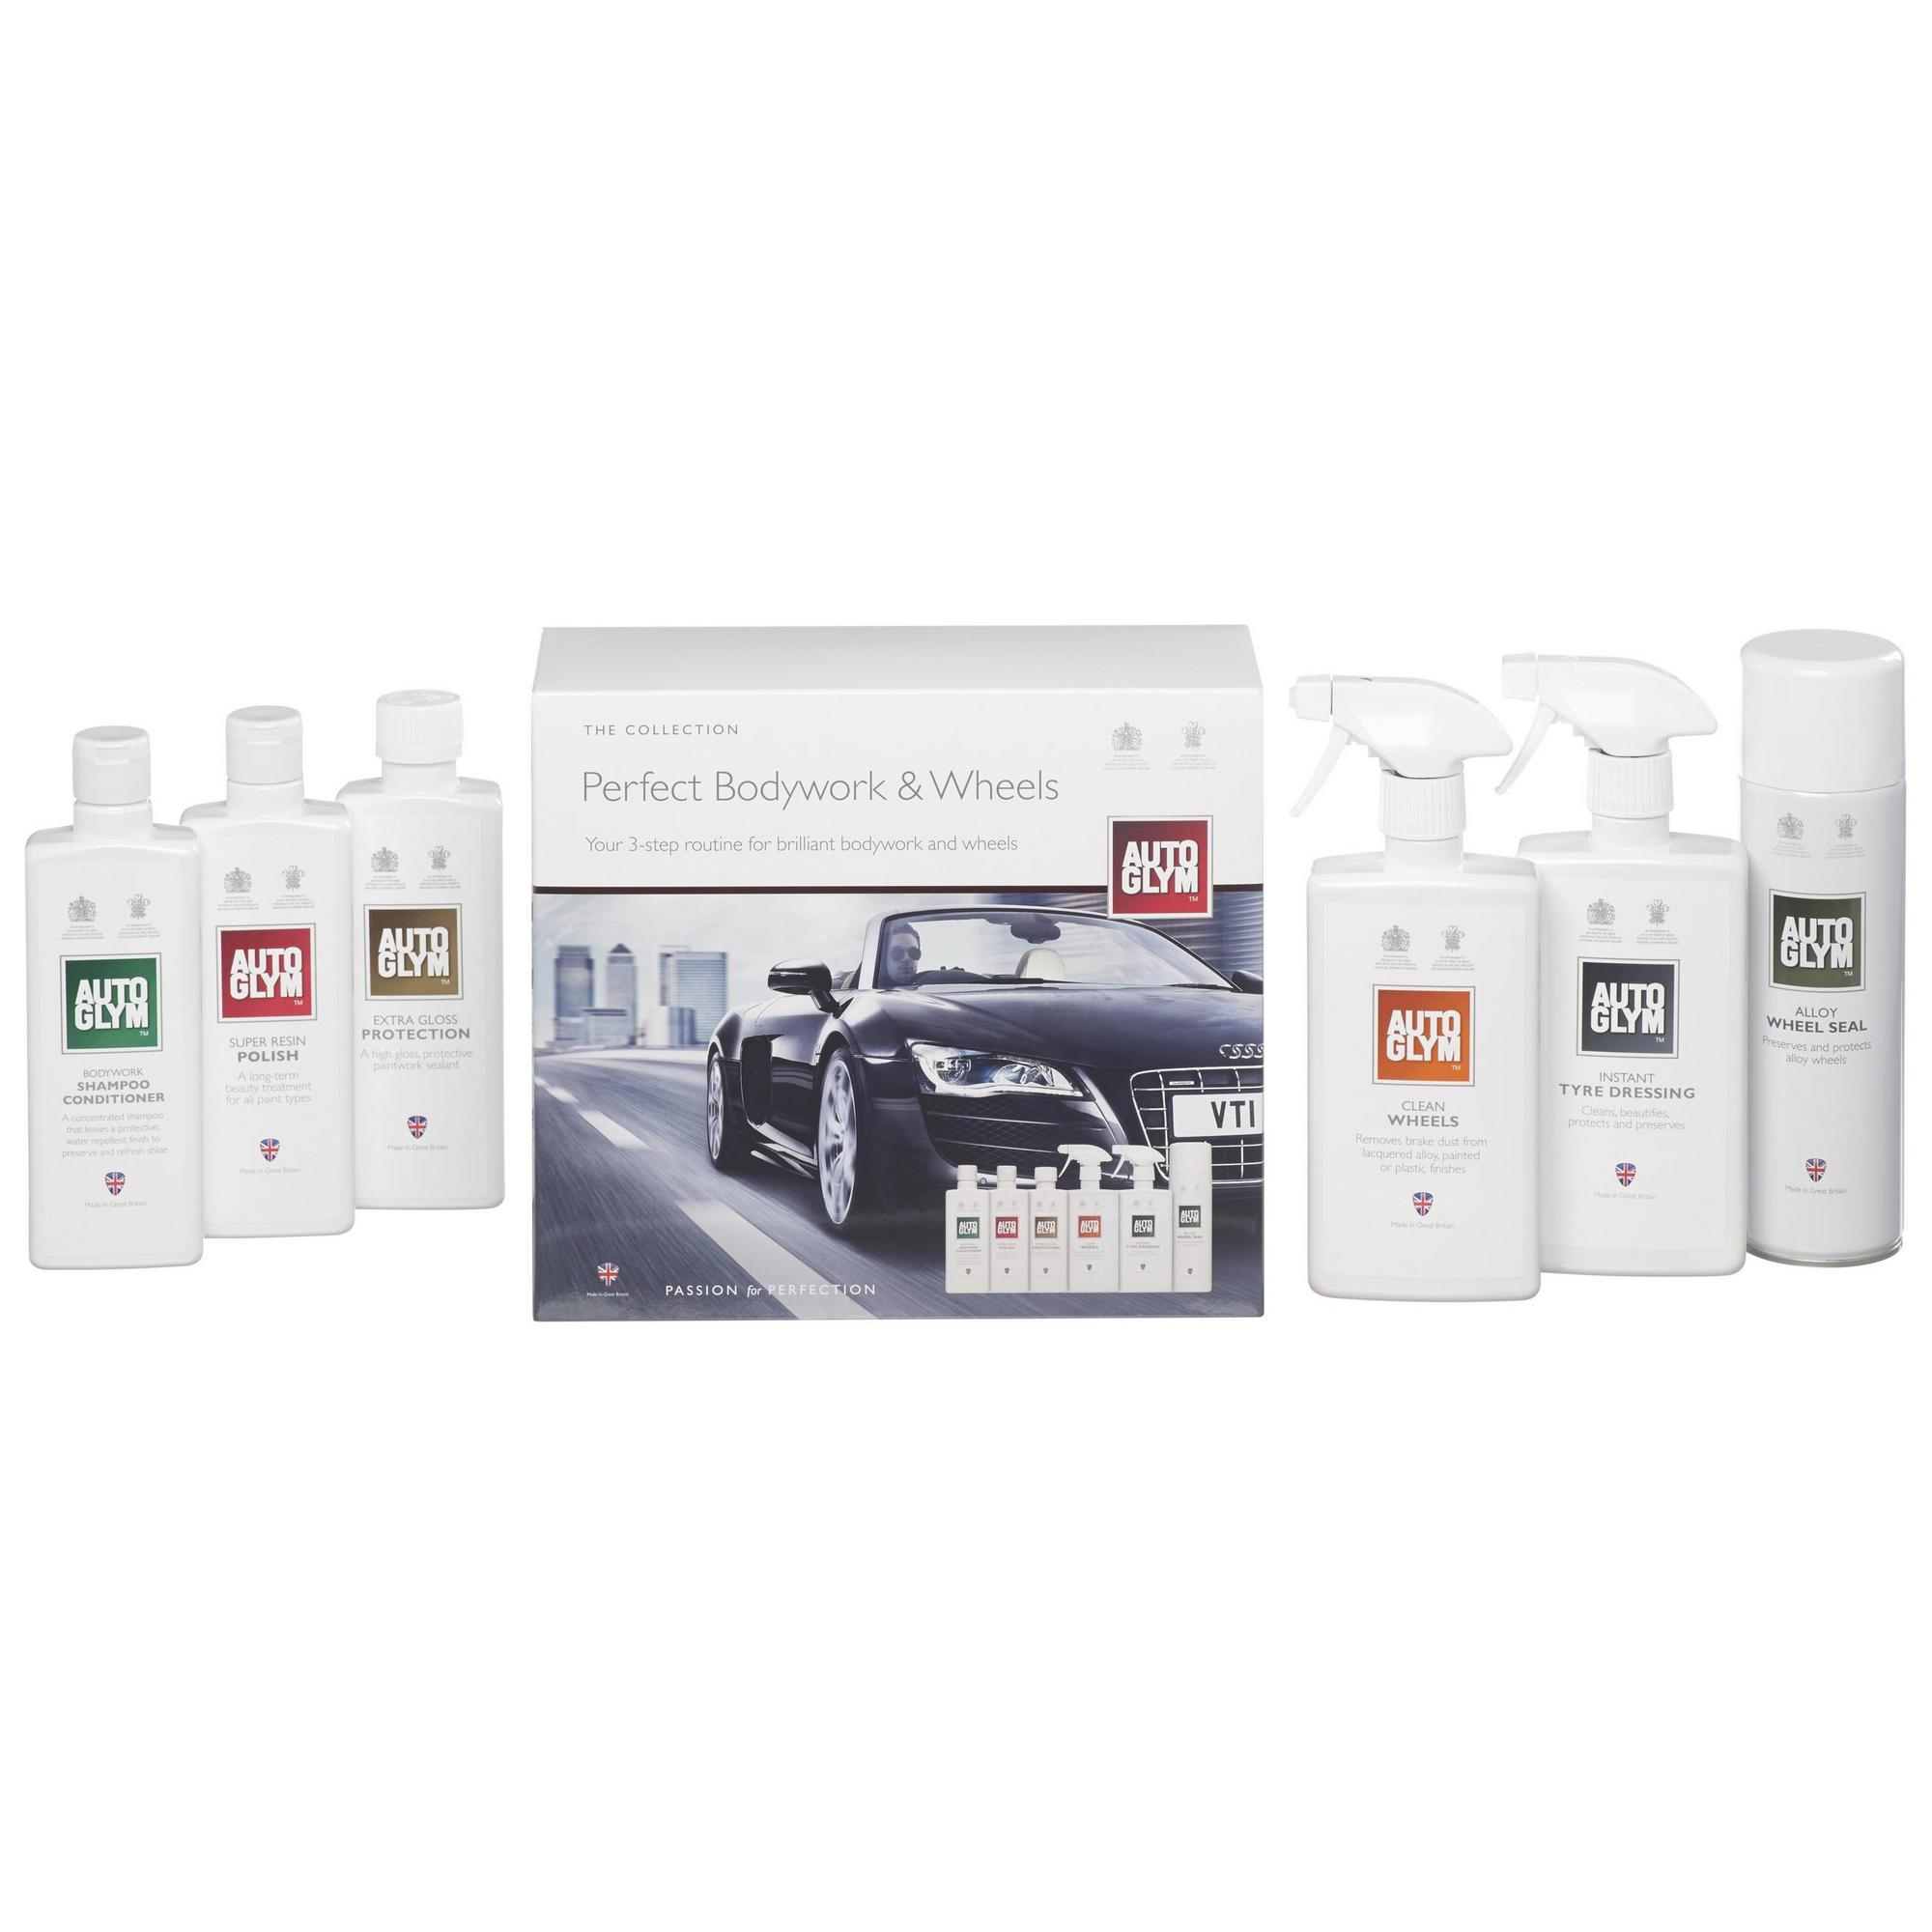 RDVP9SBW AutoGlym Bodywork & Wheels Collection